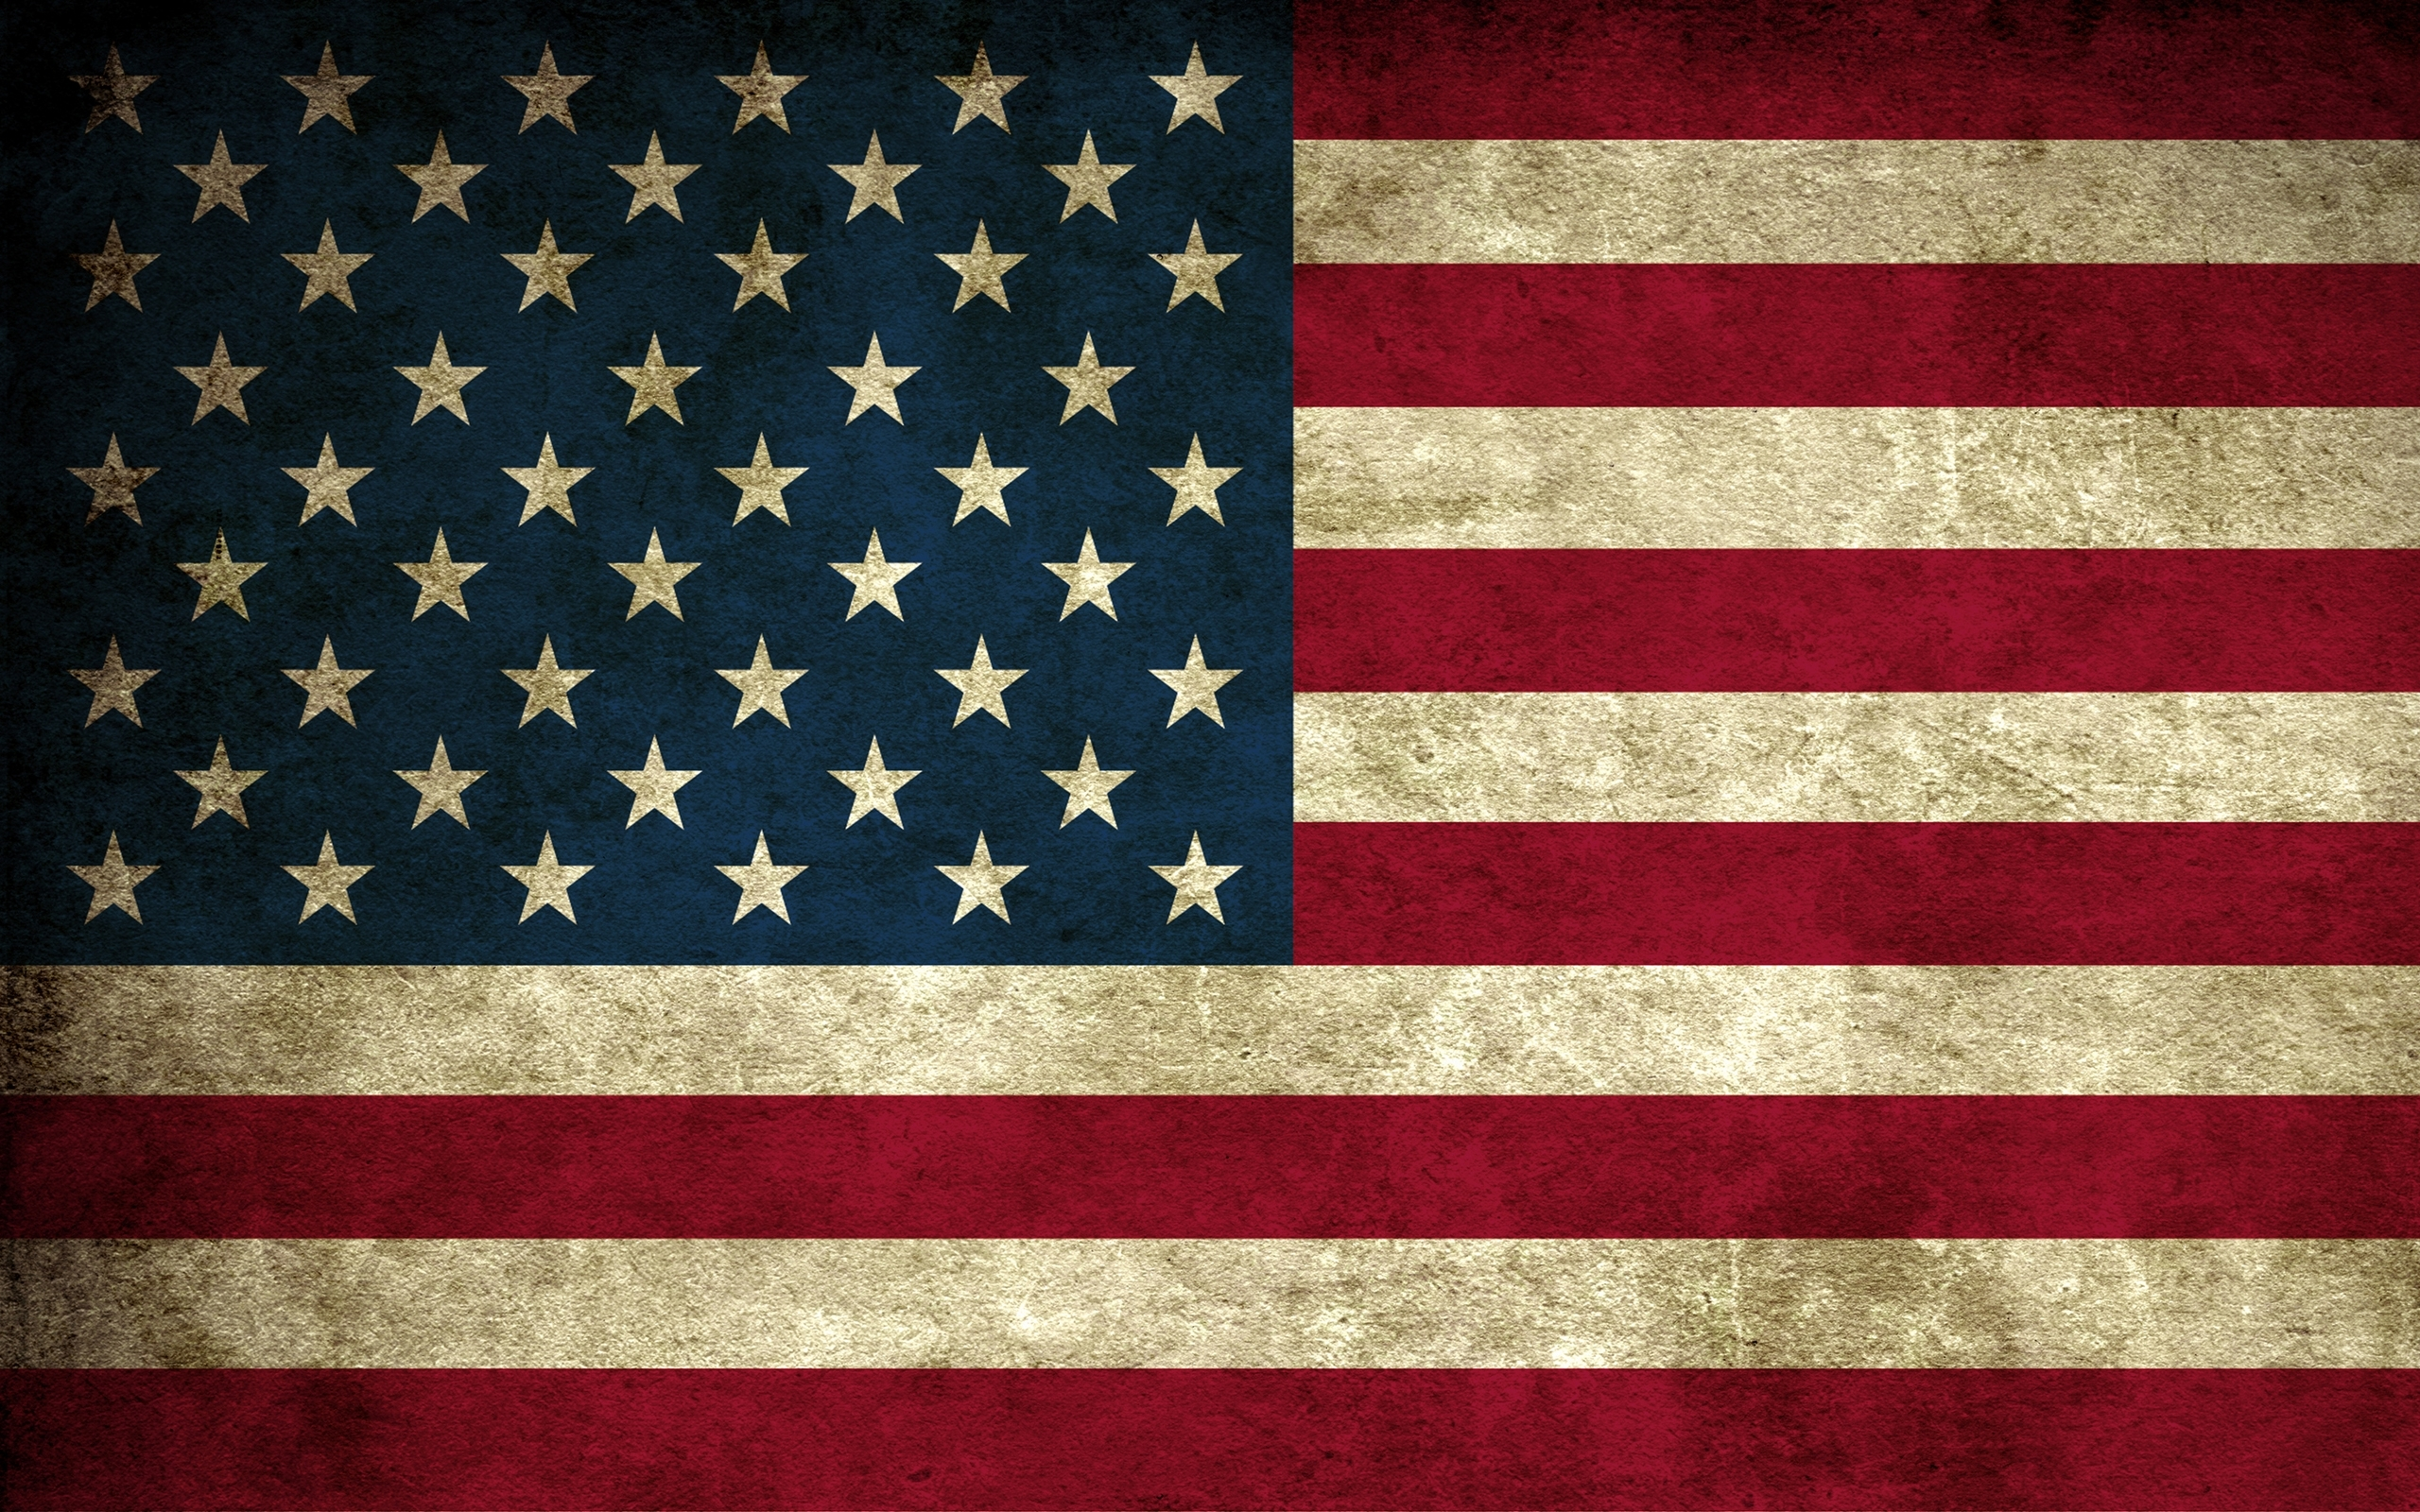 American flag photo effects The Star-Spangled Banner - Wikipedia